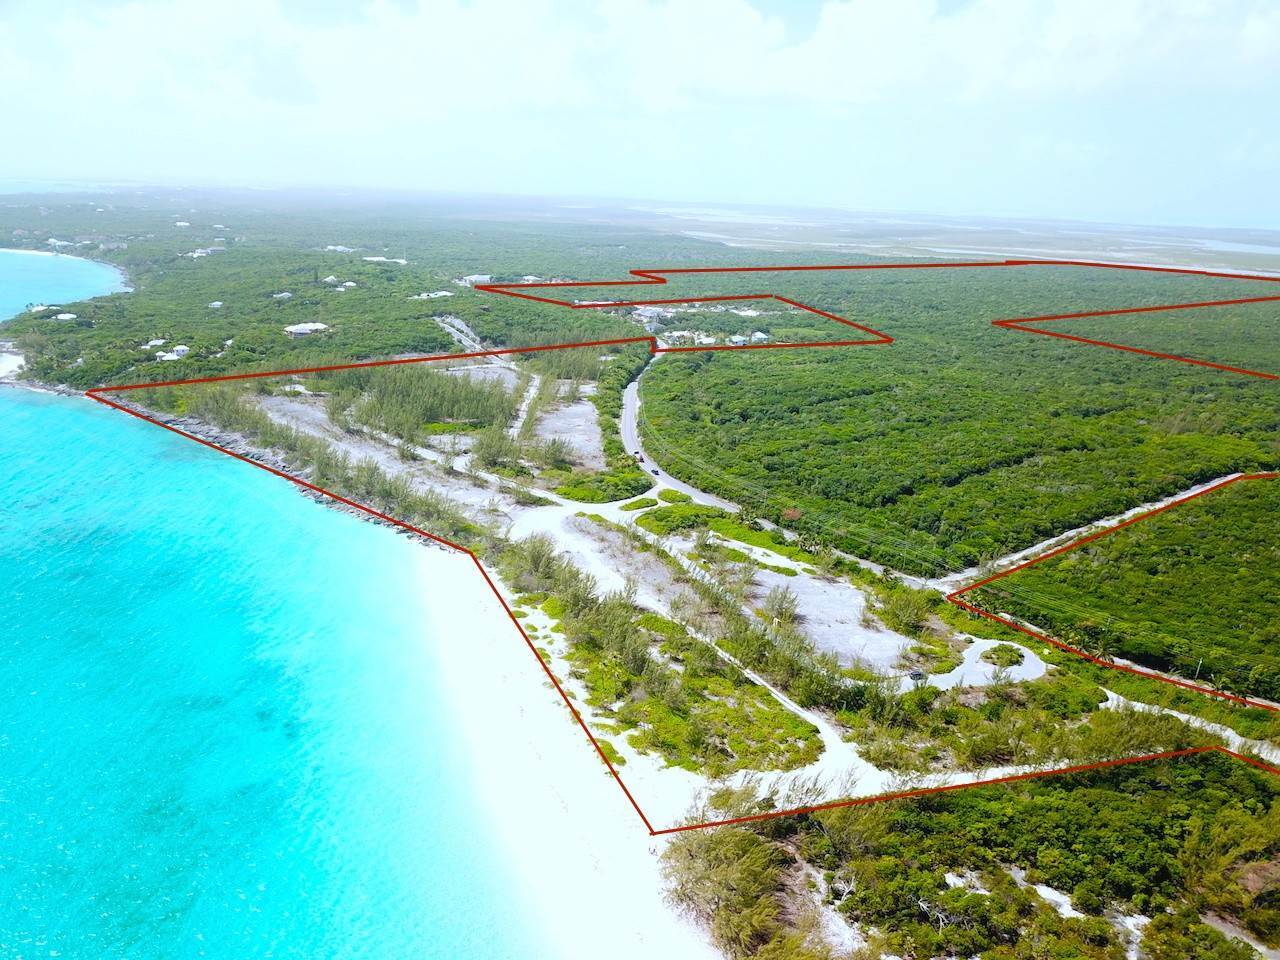 Land/Lot for Sale at Fully Approved Resort Development Prime Exuma Location - MLS 42279 Exumas, Bahamas